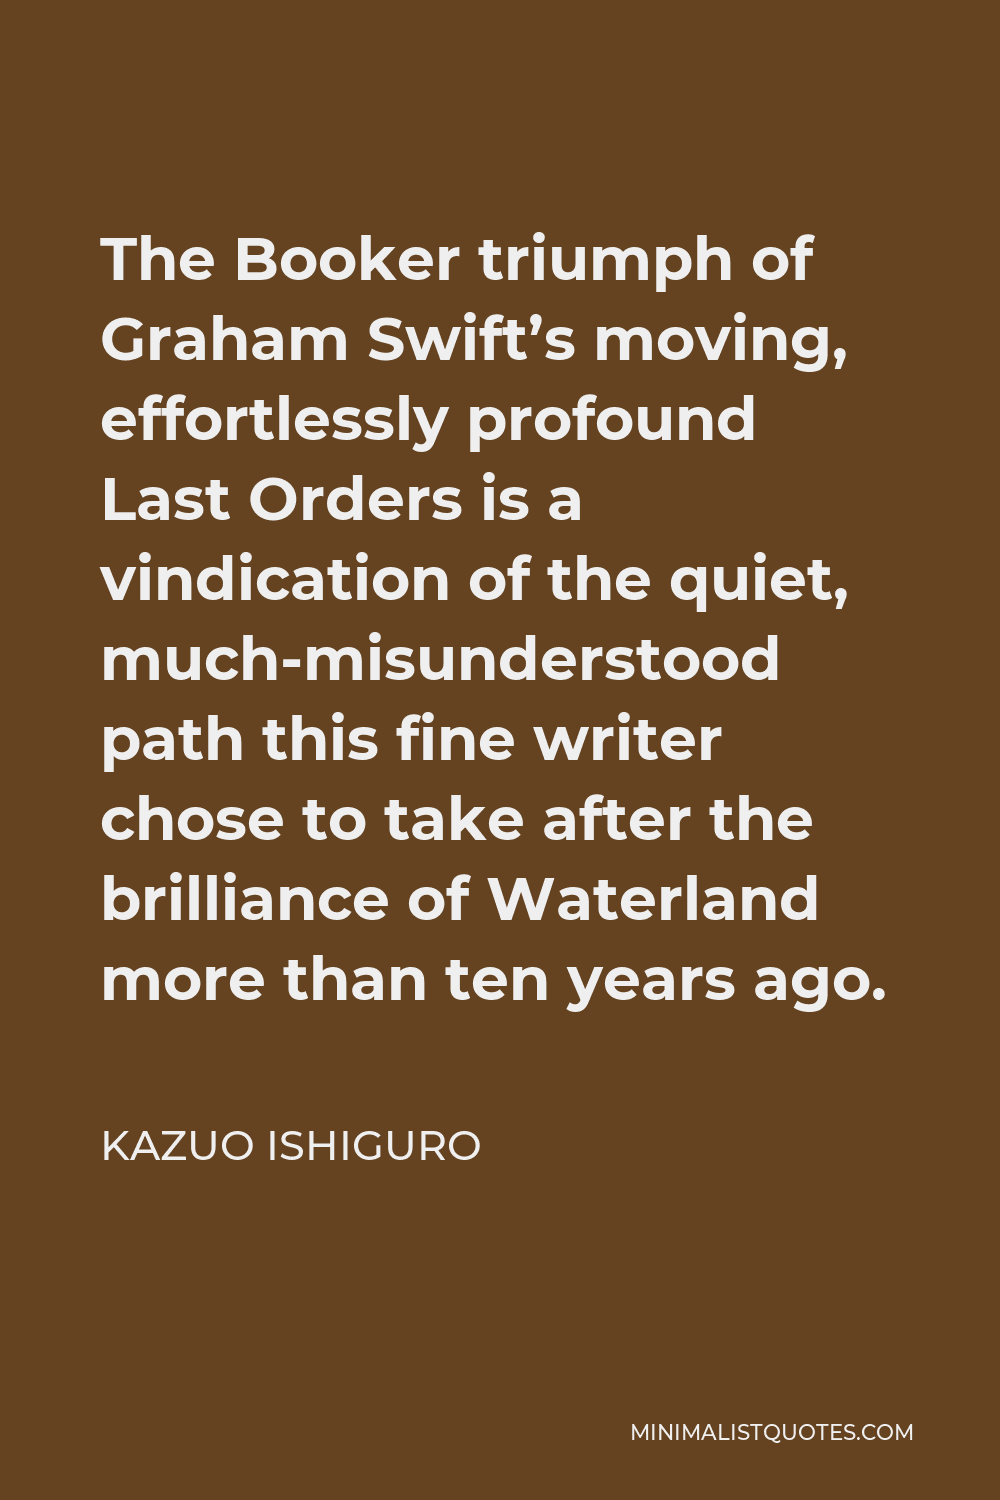 Kazuo Ishiguro Quote - The Booker triumph of Graham Swift's moving, effortlessly profound Last Orders is a vindication of the quiet, much-misunderstood path this fine writer chose to take after the brilliance of Waterland more than ten years ago.